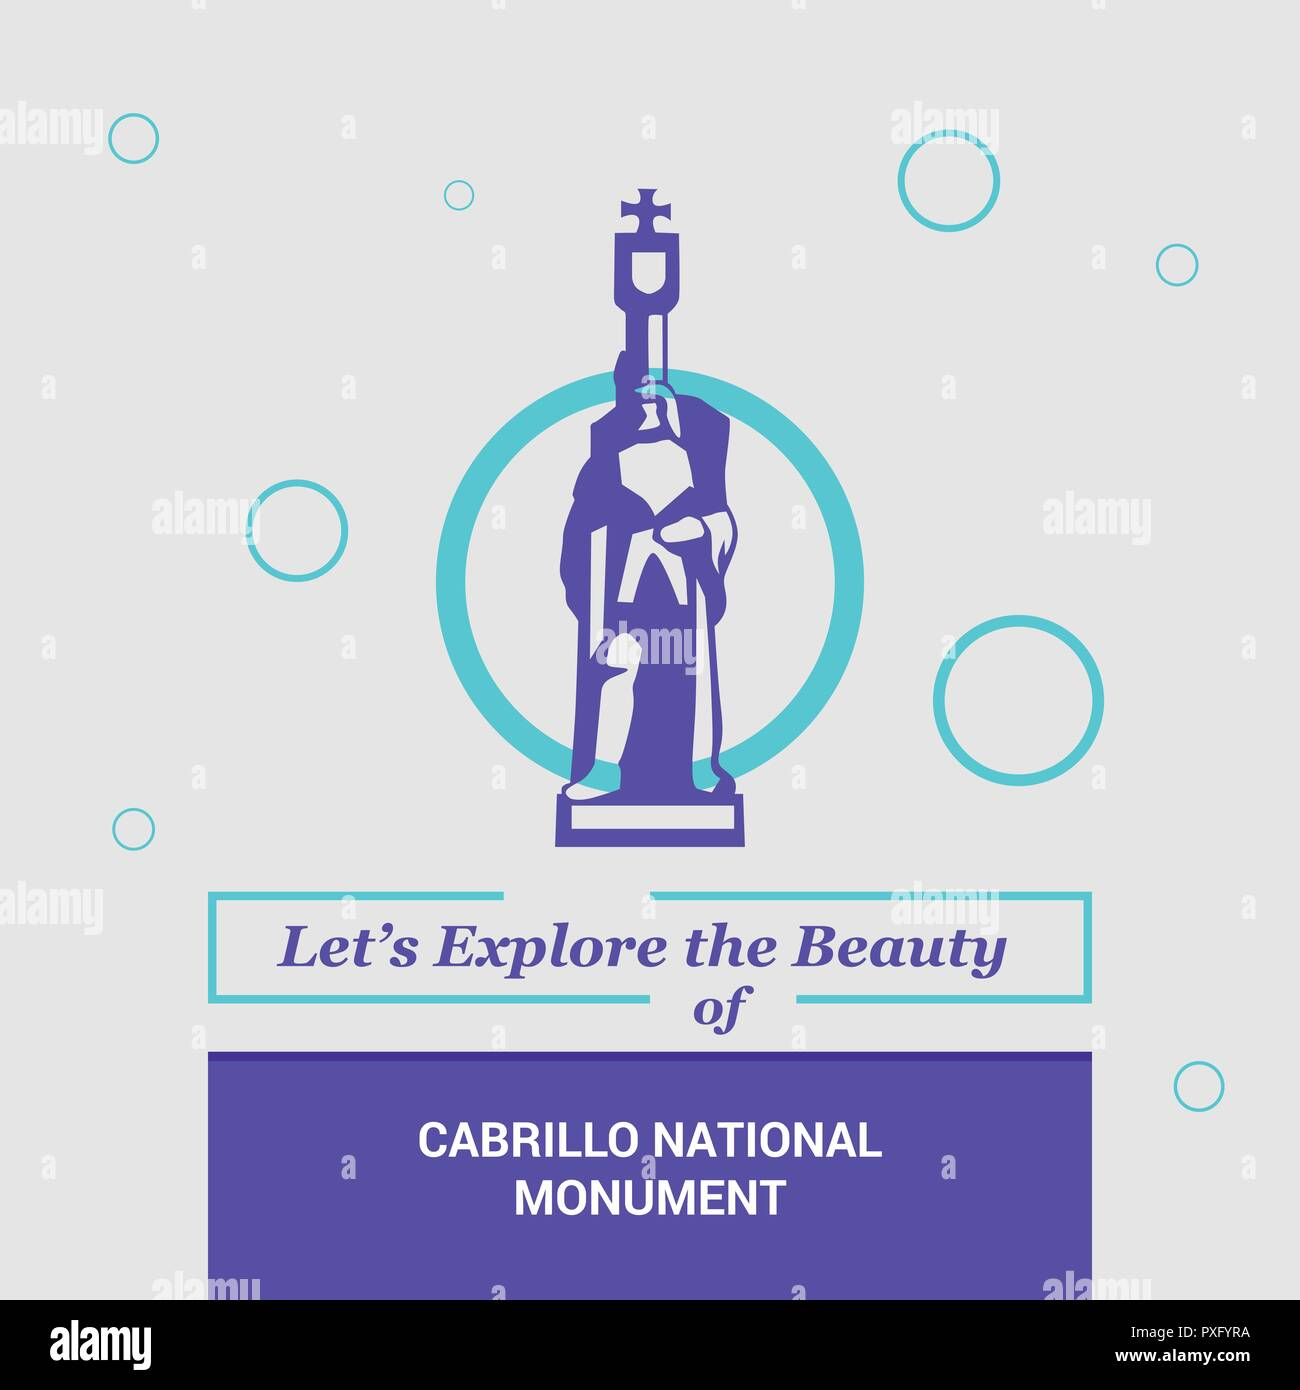 Let's Explore the beauty of Cabrillo National Monument AZ, USA National Landmarks - Stock Vector